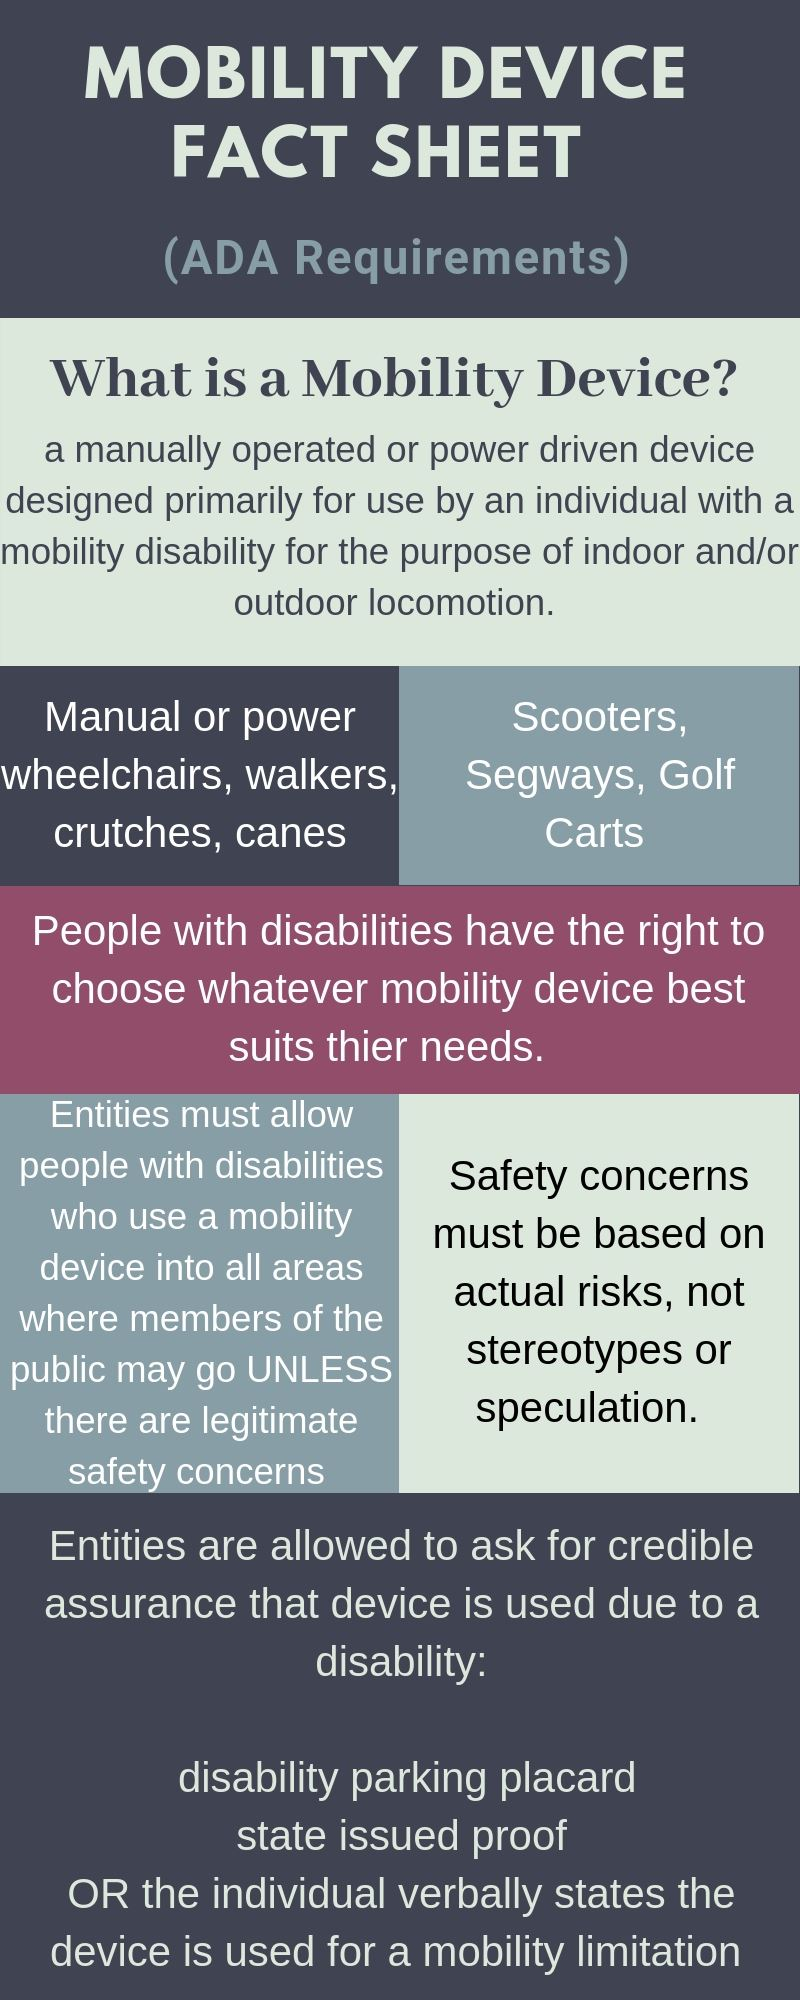 Mobility Device Fact Sheet